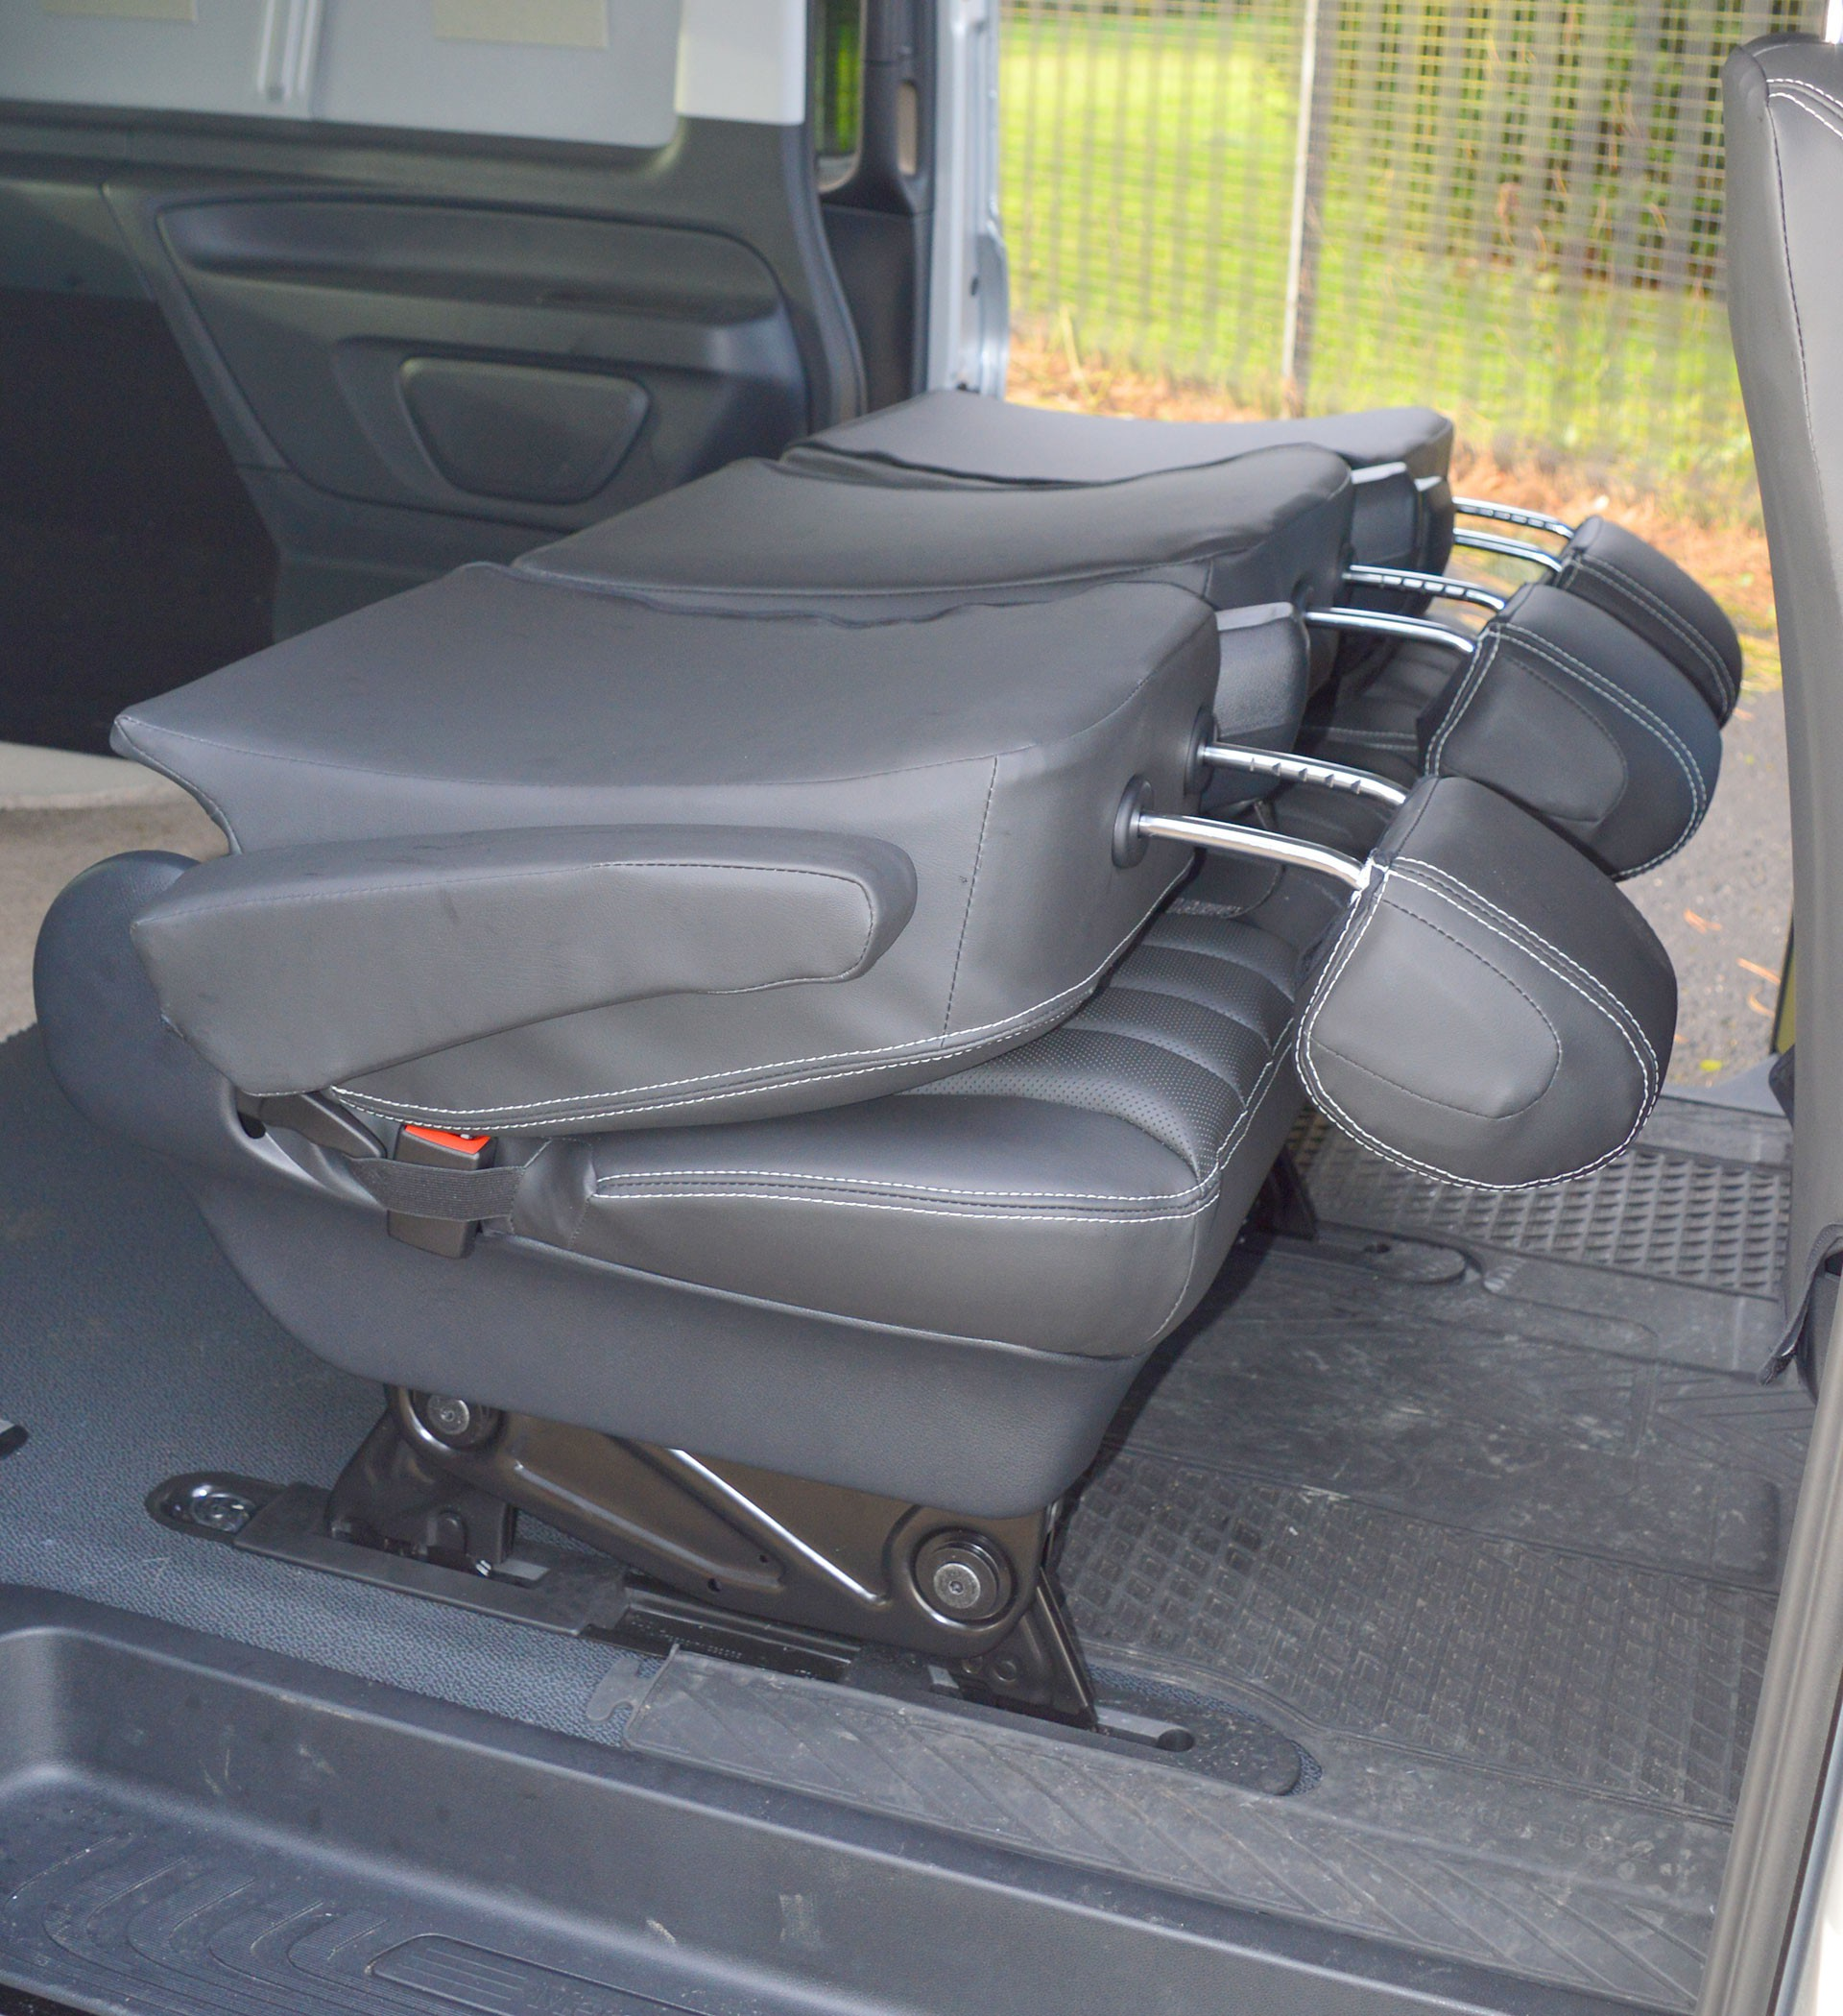 Mercedes Benz Vito W447 Tailored Van Seat Covers With Memory Foam - 5 Seater Car Seat Covers ...